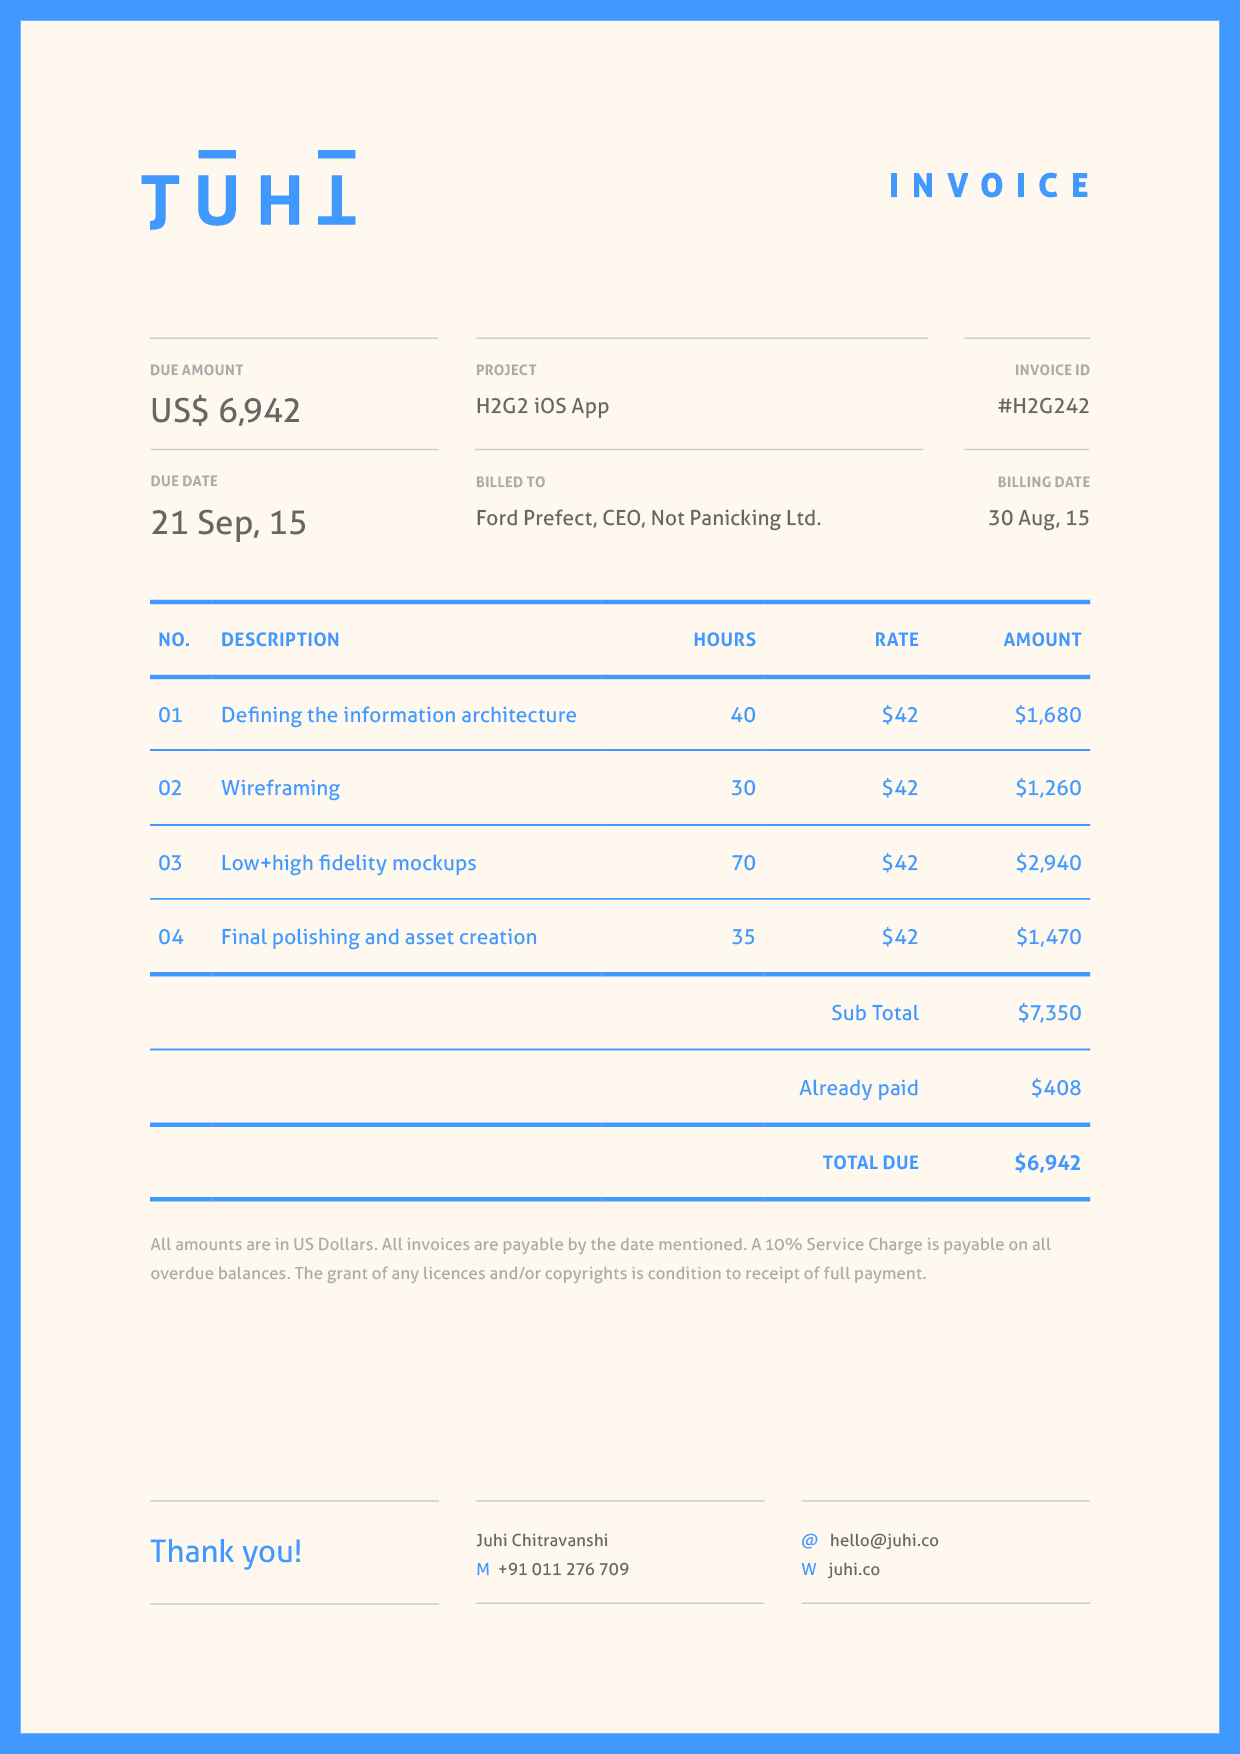 Usdgus  Inspiring Dont Hold Back On Your Invoice  Inspiring Designs  With Excellent Invoice By Juhi Chitravanshi Follow With Comely Return Receipt Requested Cost Also How Much Is Certified Mail With Return Receipt In Addition Security Deposit Return Receipt And Rent Receipt Templates As Well As Receipt Of Acknowledgement Additionally How To Manage Receipts From Inspirationfeedcom With Usdgus  Excellent Dont Hold Back On Your Invoice  Inspiring Designs  With Comely Invoice By Juhi Chitravanshi Follow And Inspiring Return Receipt Requested Cost Also How Much Is Certified Mail With Return Receipt In Addition Security Deposit Return Receipt From Inspirationfeedcom